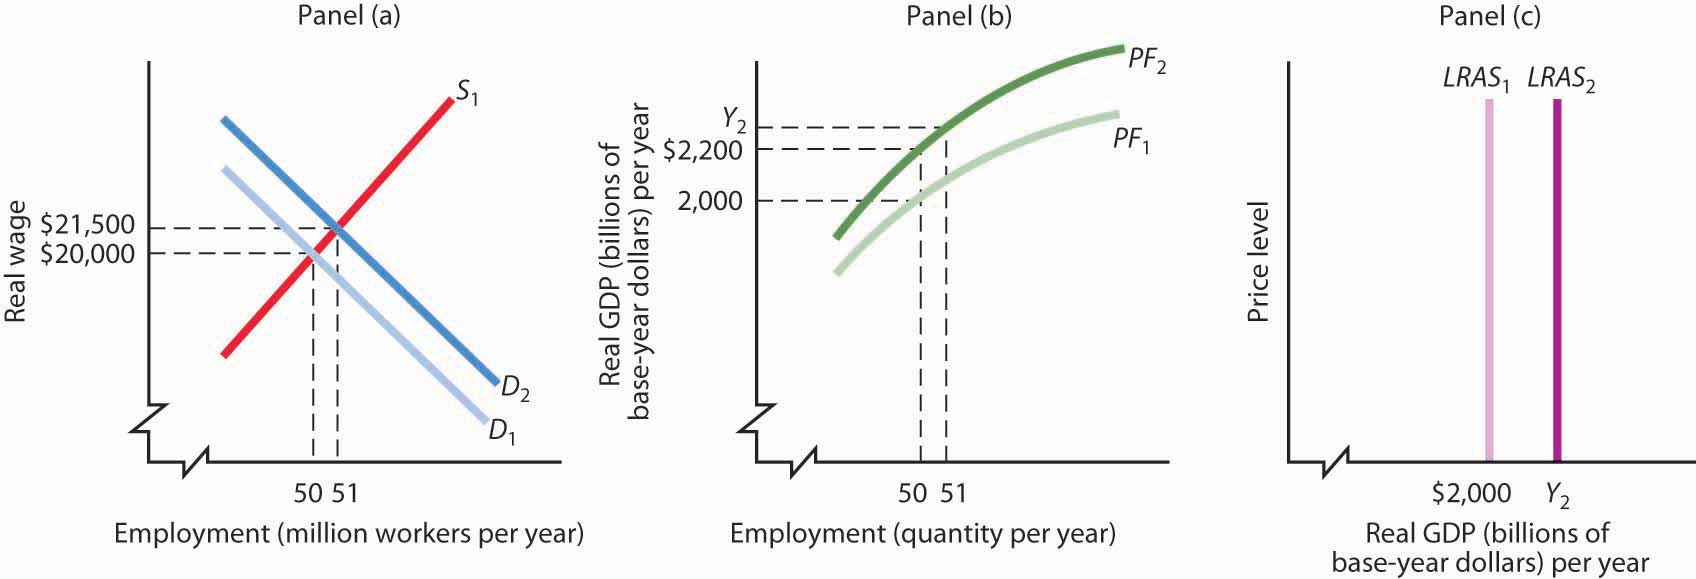 8.2 Growth and the Long-Run Aggregate Supply Curve